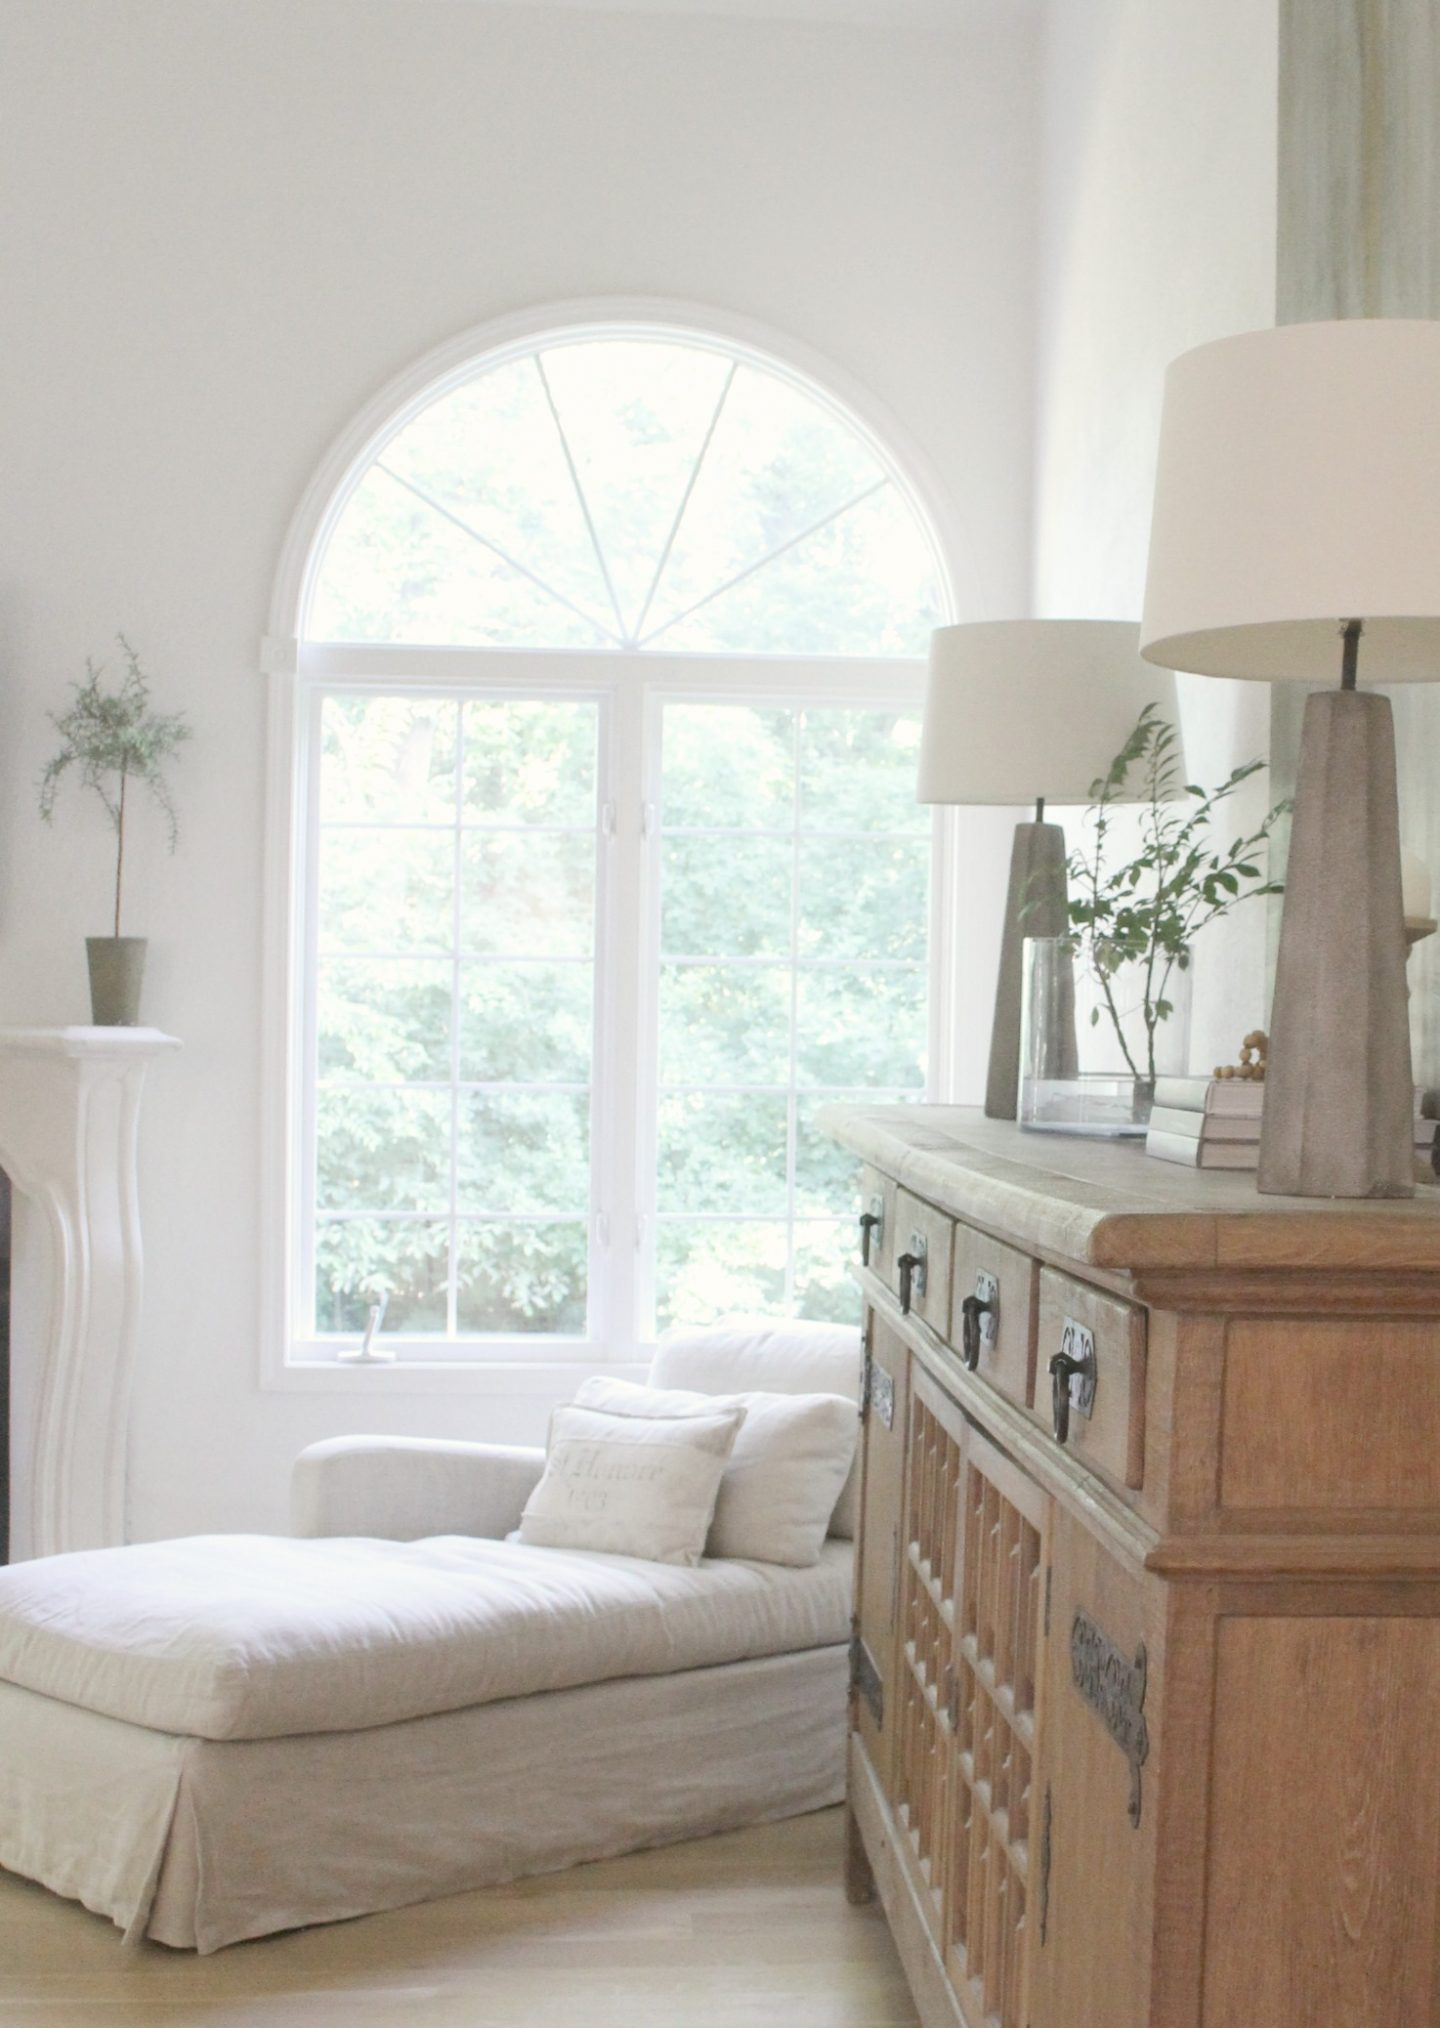 Shop My Home: European Inspired, White French Country ...